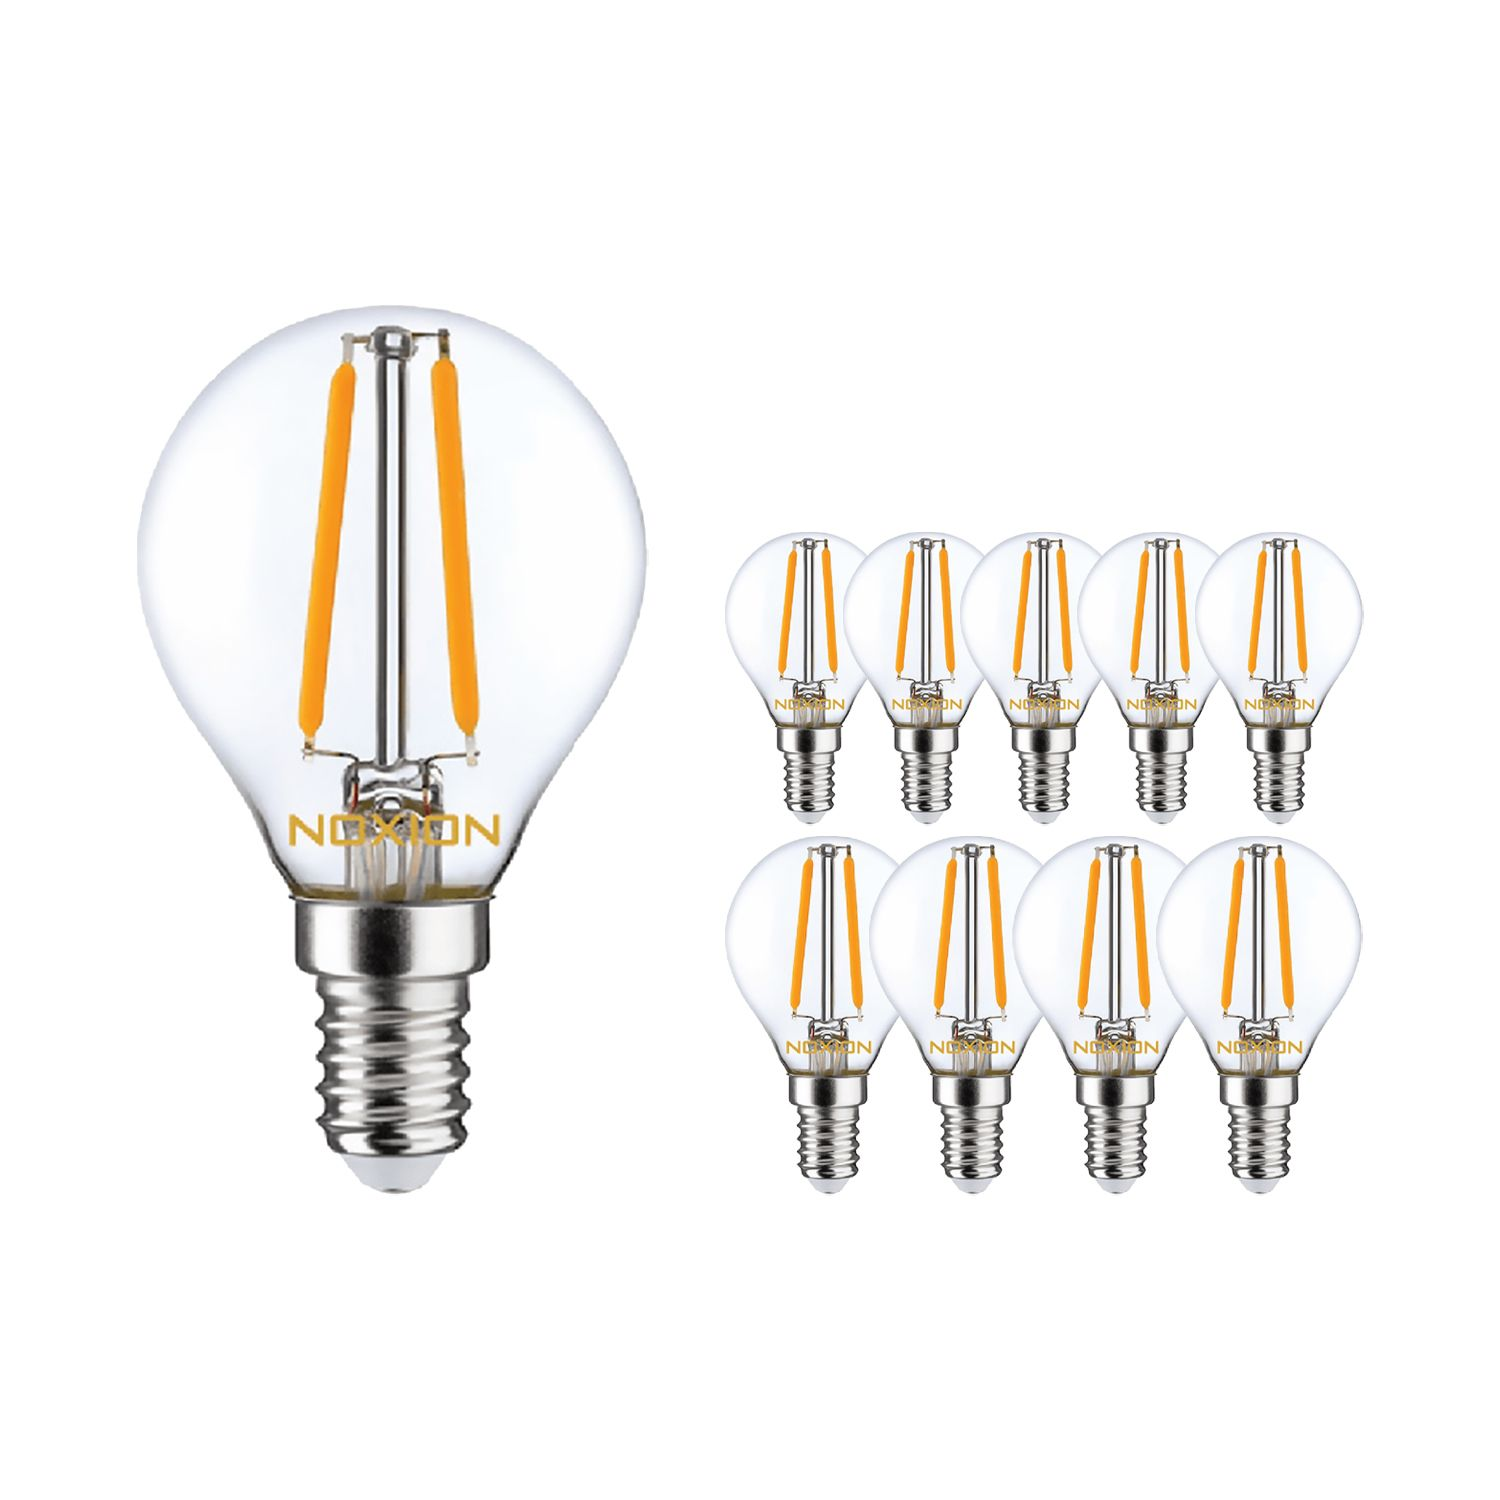 Multipack 10x Noxion Lucent Filament LED Lustre 4.5W 827 P45 E14 Clear | Dimmable - Extra Warm White - Replaces 40W